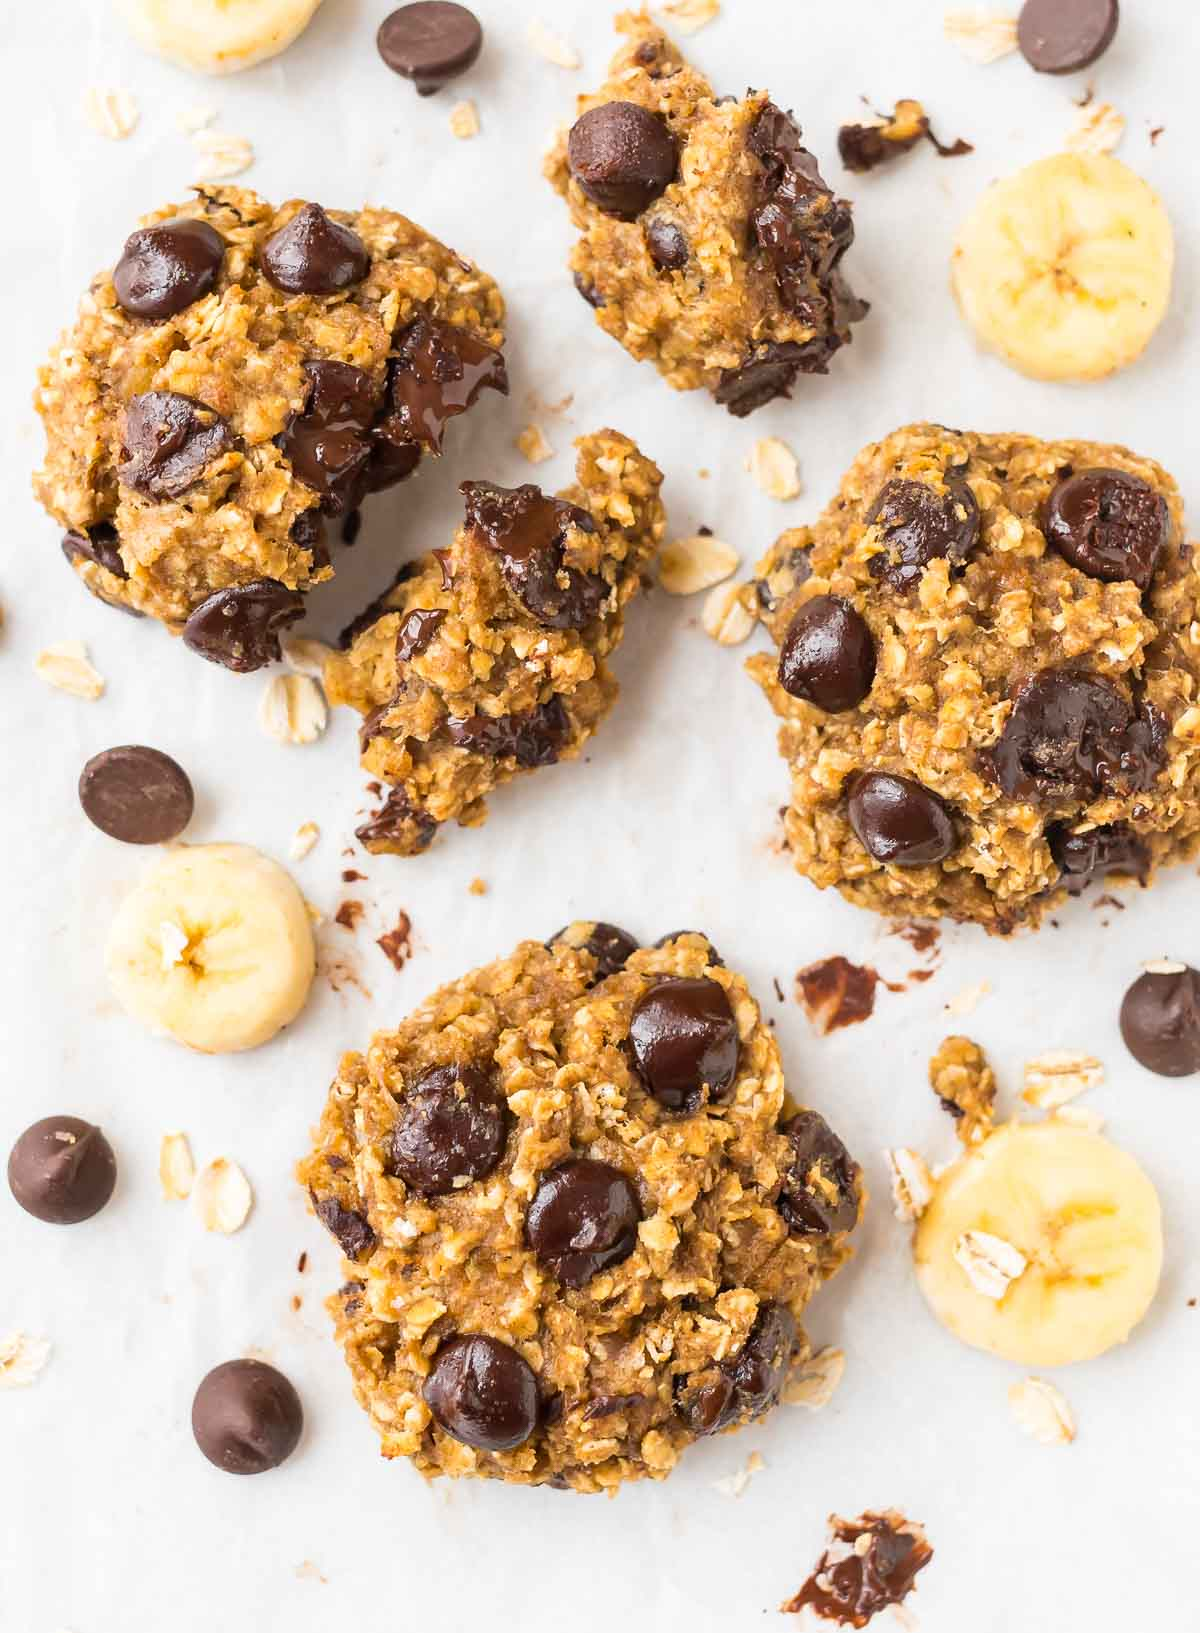 Ultra soft Oatmeal Banana Chocolate Chip Cookies. NO BUTTER! Banana makes the cookies ultra moist and chewy. Easy, healthy, and perfect for anytime you need a sweet fix. Recipe at wellplated.com | @wellplated